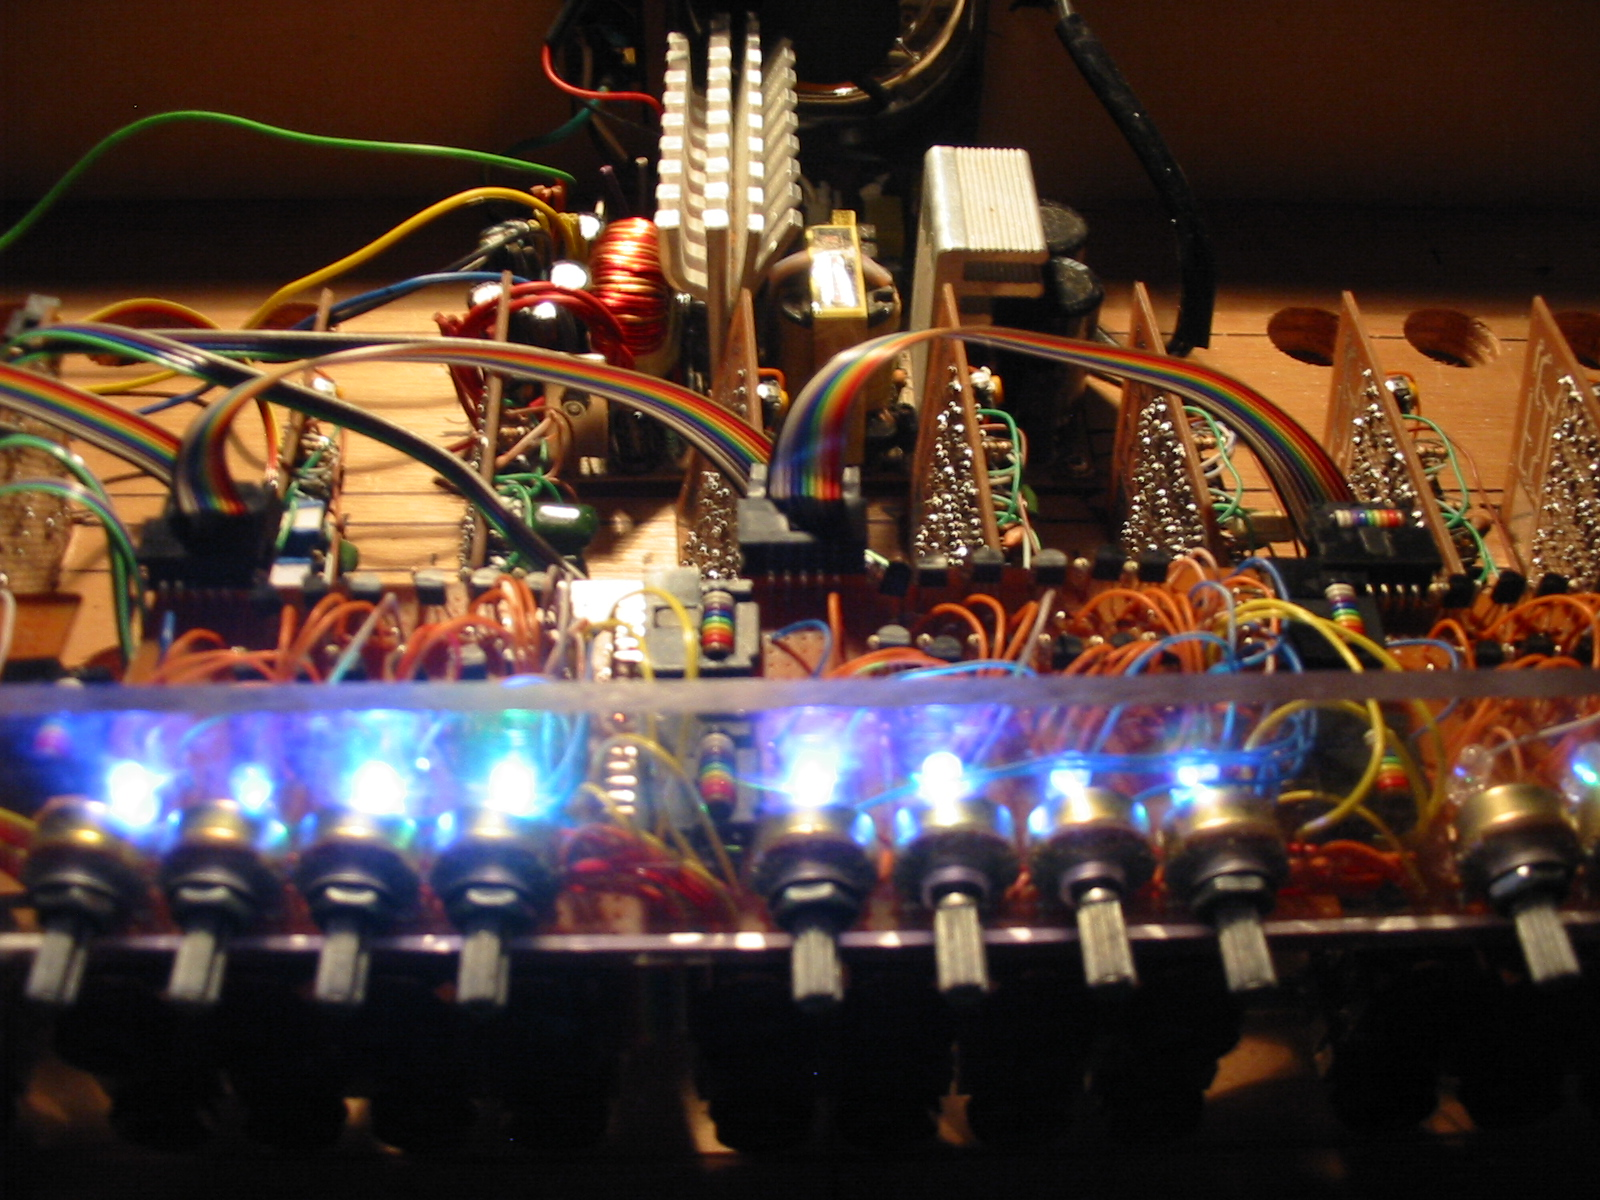 Build an analog vocoder